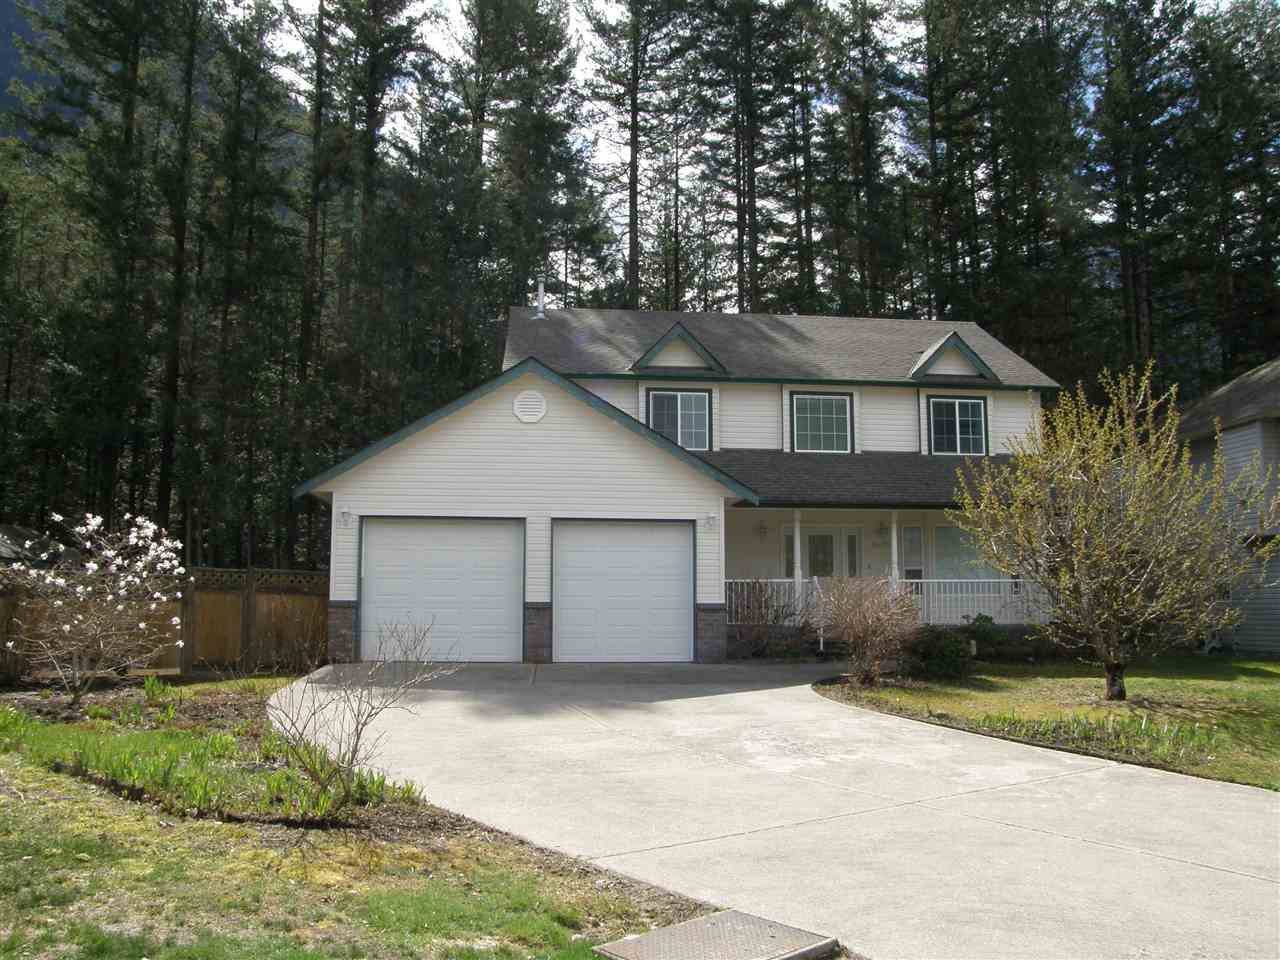 Main Photo: 64000 EDWARDS Drive in Hope: Hope Silver Creek House for sale : MLS®# R2346508